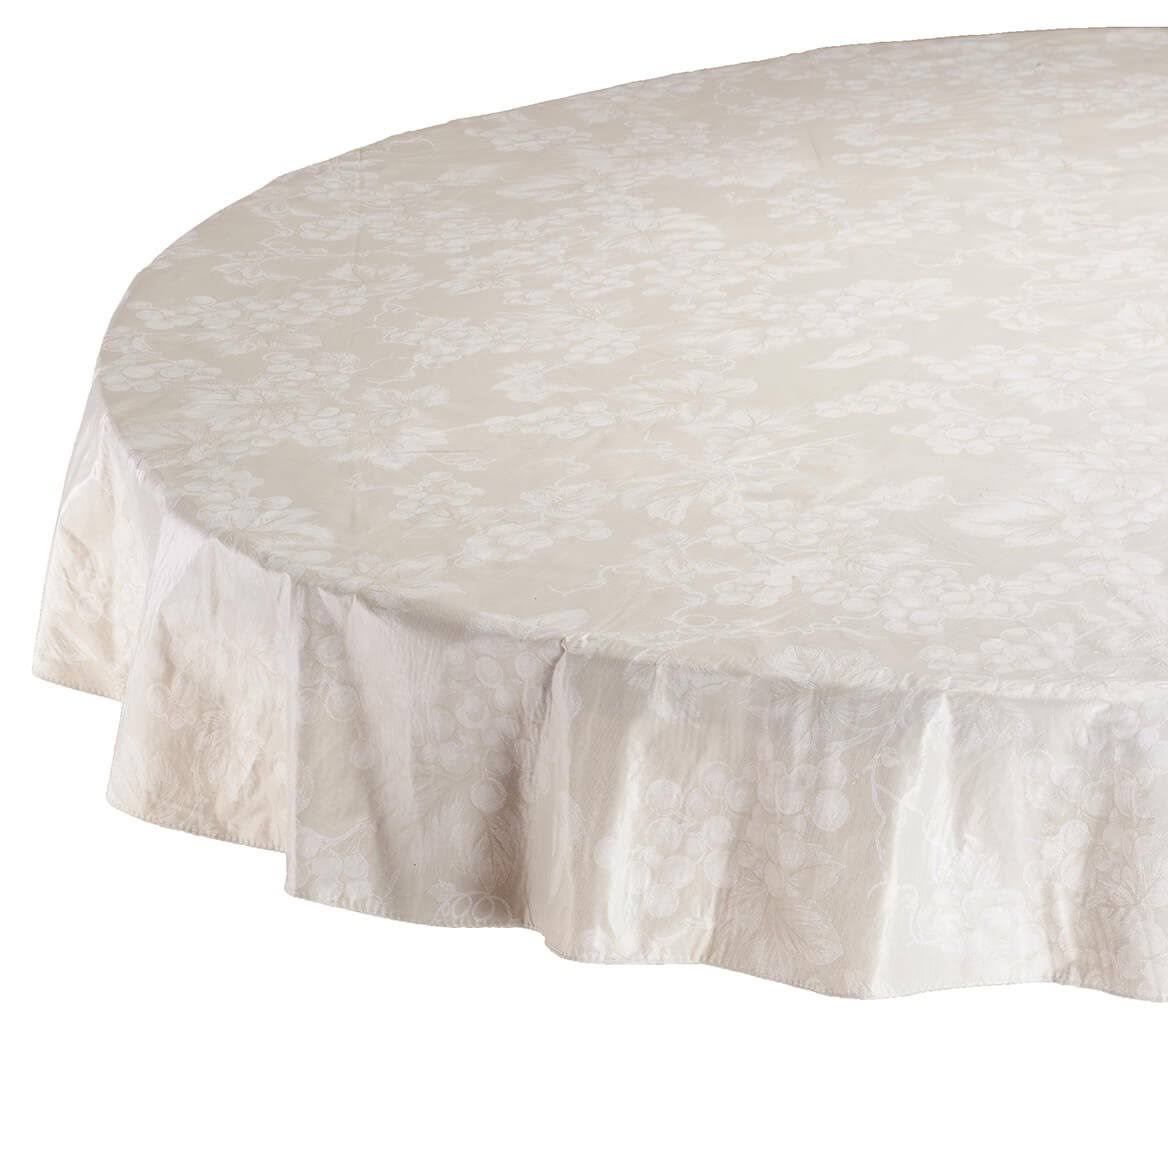 "Ivory Grapevine Vinyl Tablecloth (70"" Round)"